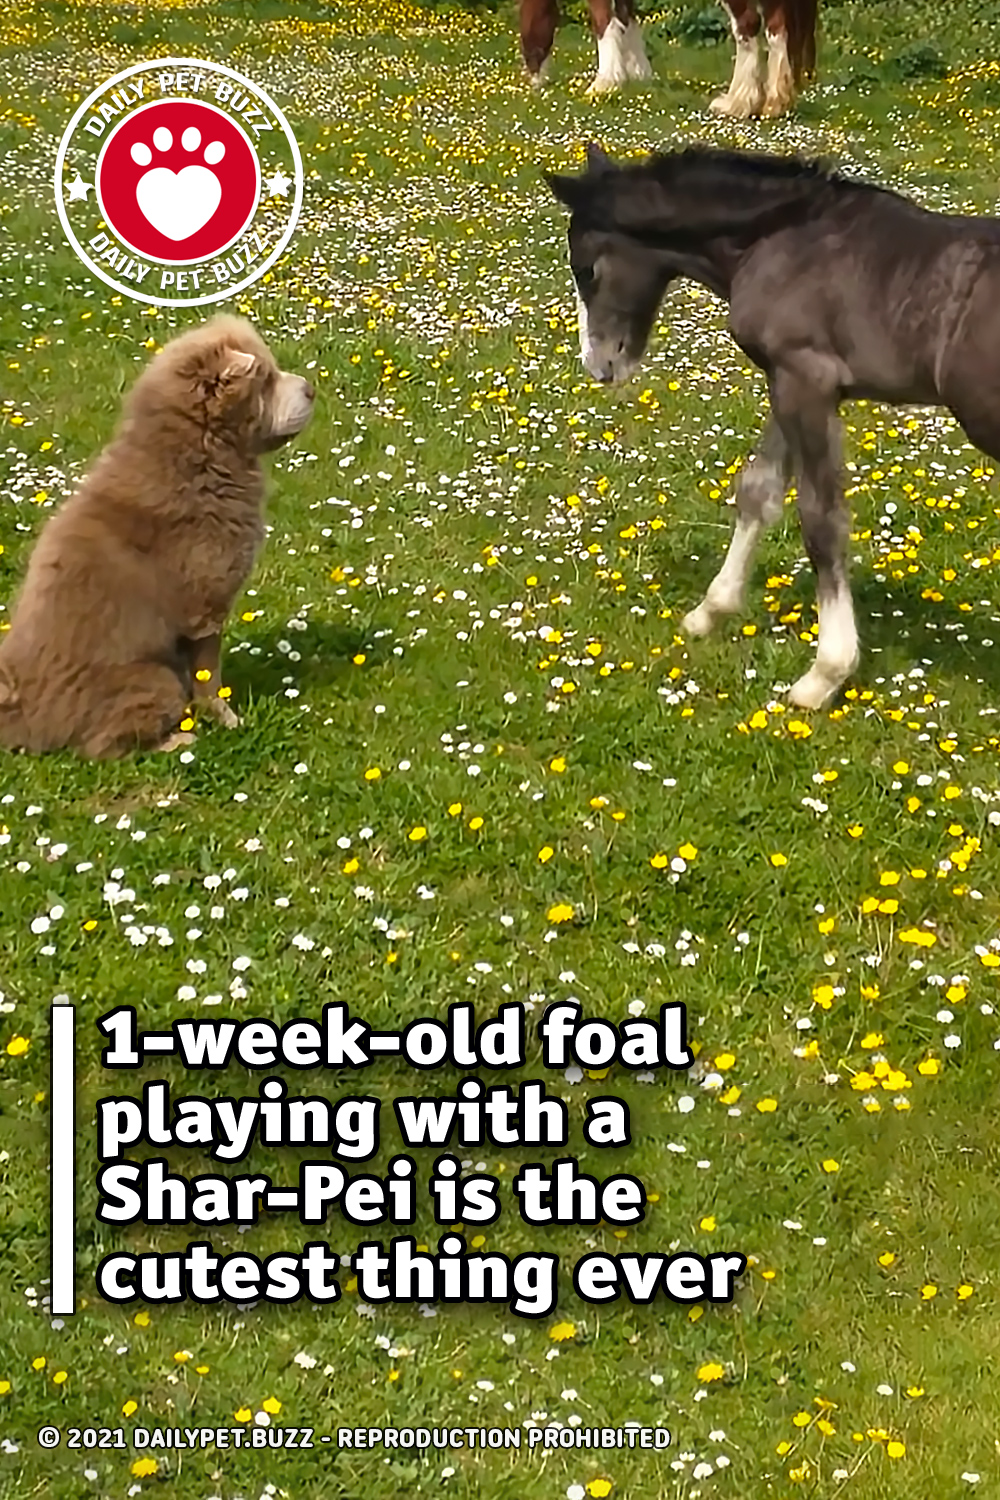 1-week-old foal playing with a Shar-Pei is the cutest thing ever